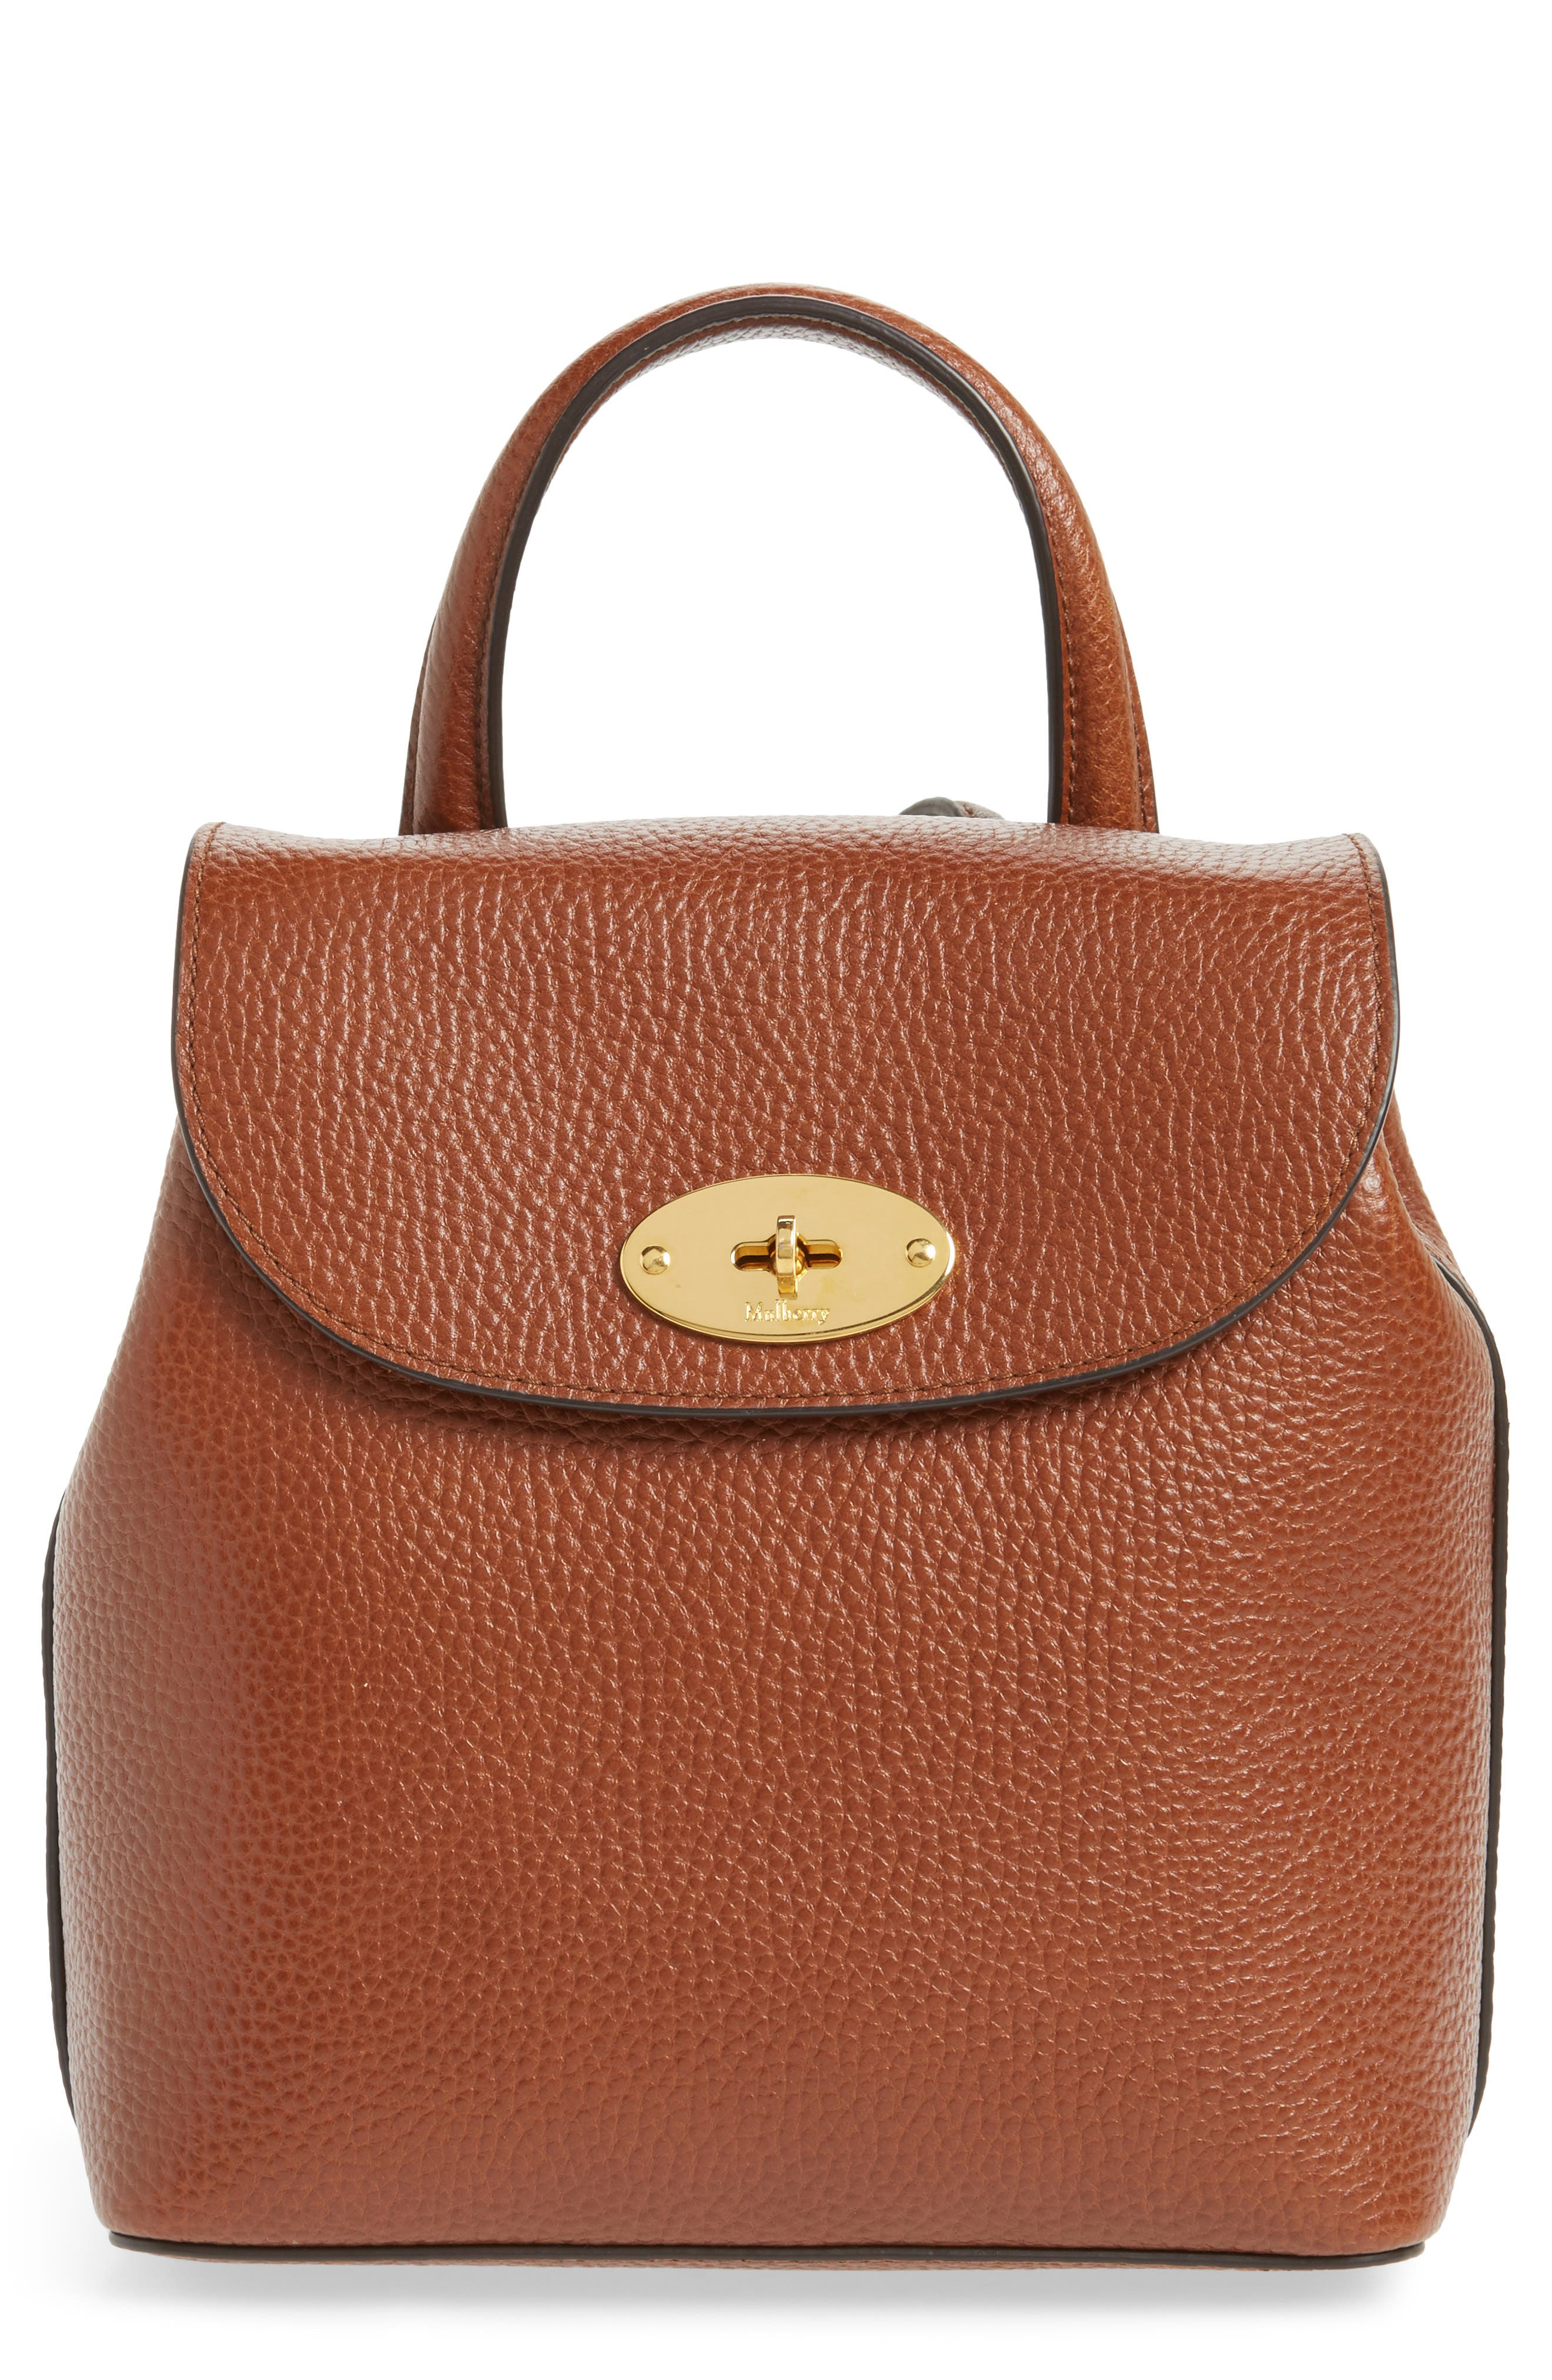 d1e49f554d ... switzerland mulberry mini bayswater calfskin leather convertible  backpack nordstrom 9b136 65cc5 spain mulberry small bayswater ...